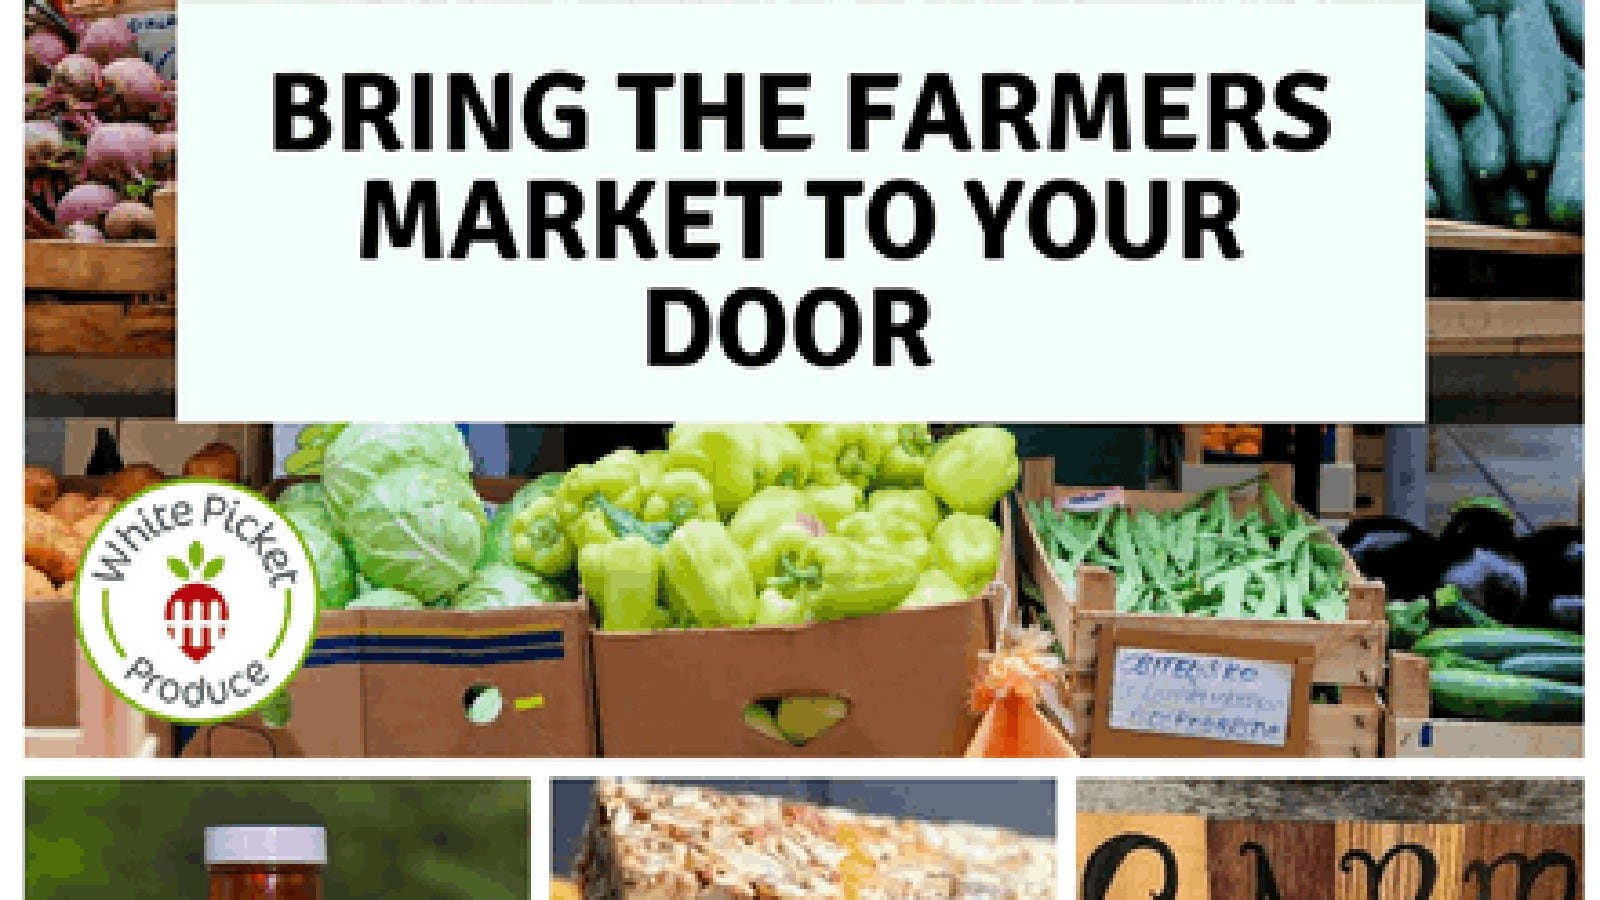 The White Picket Produce website.